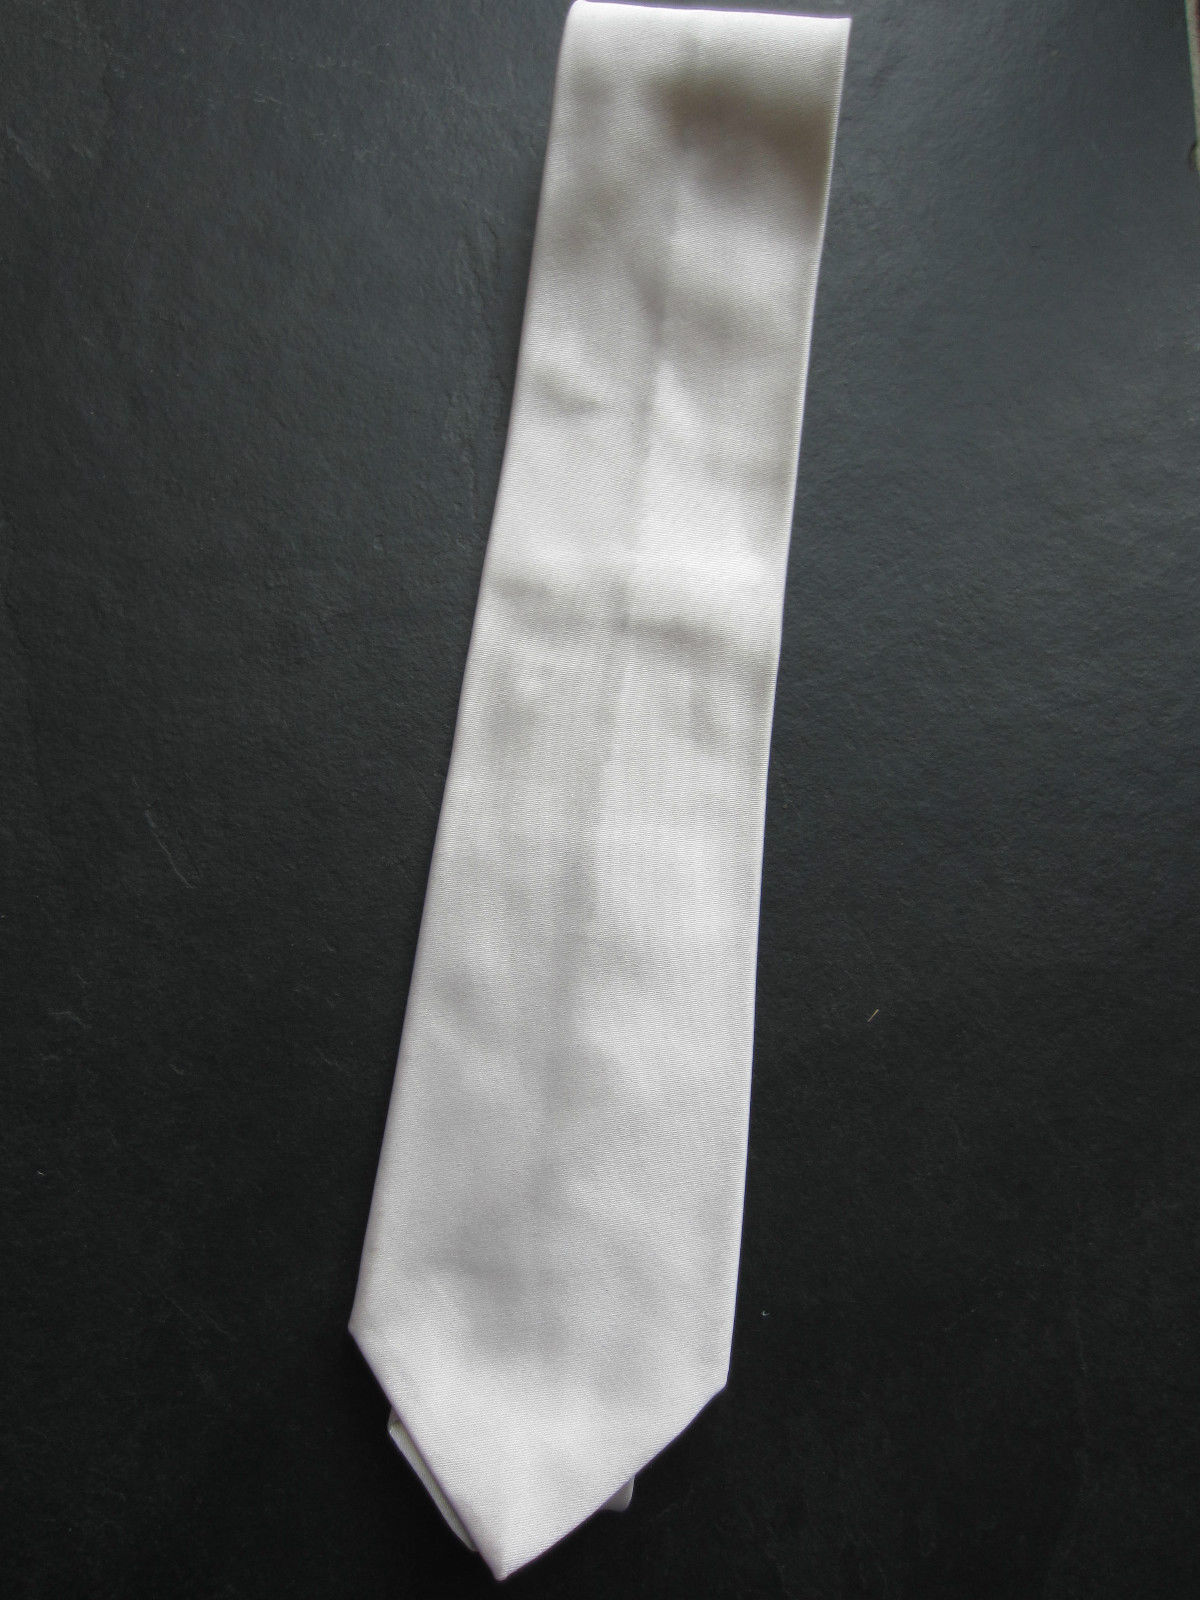 PAUL SMITH Silk TIE - Ivory colour with floral lining  - 9 cm Blade | Internationale Wahl